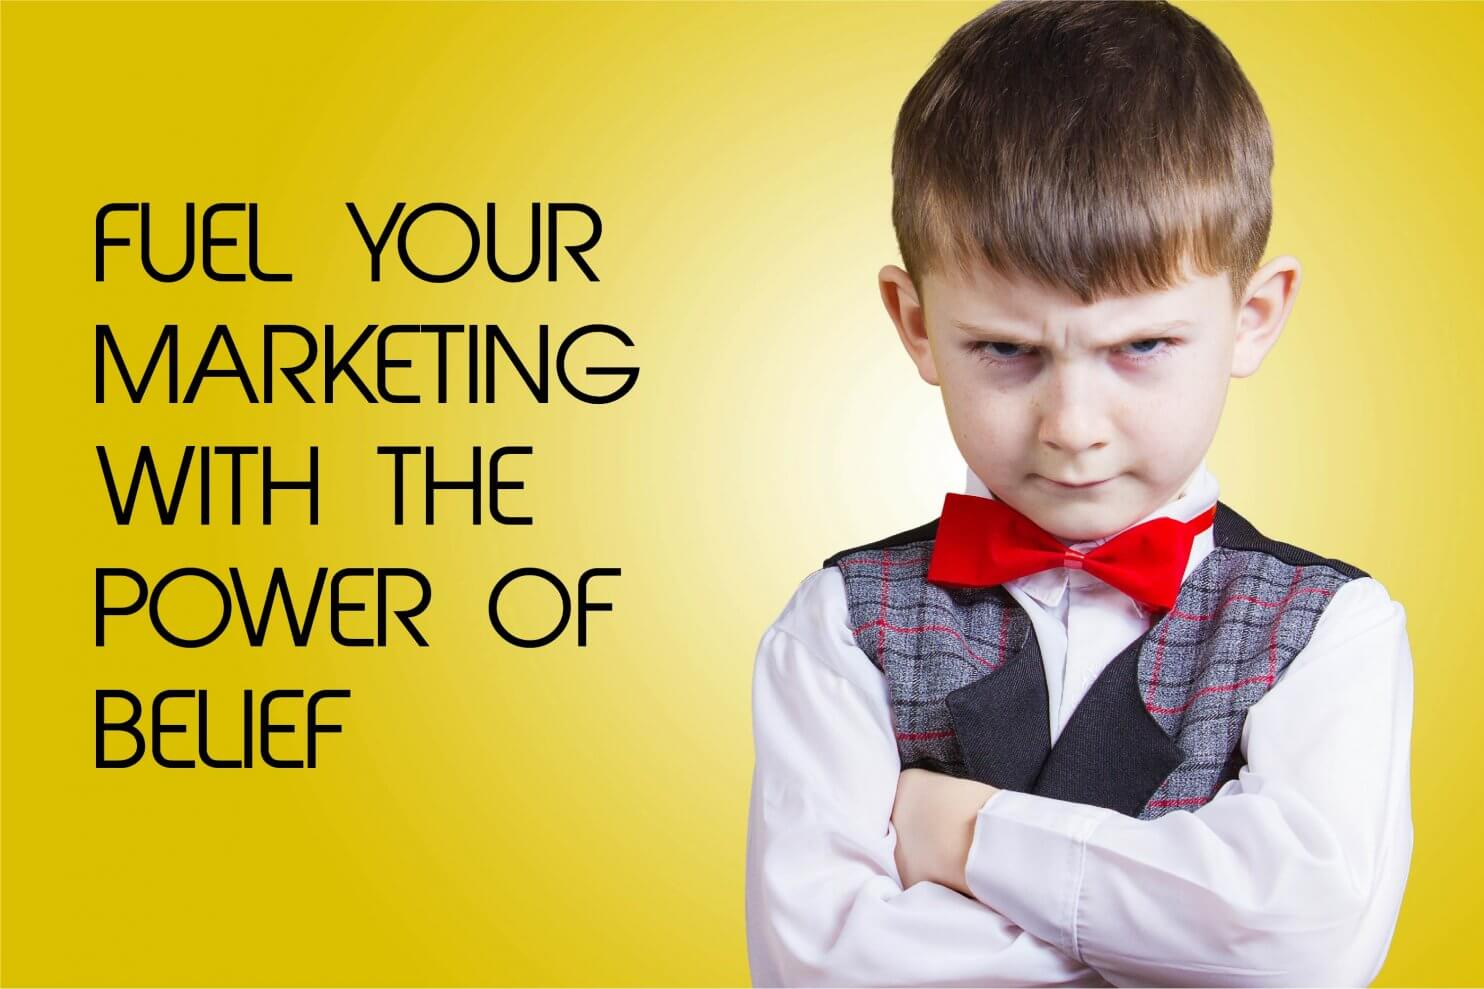 Fuel Your Marketing with the Power of Belief